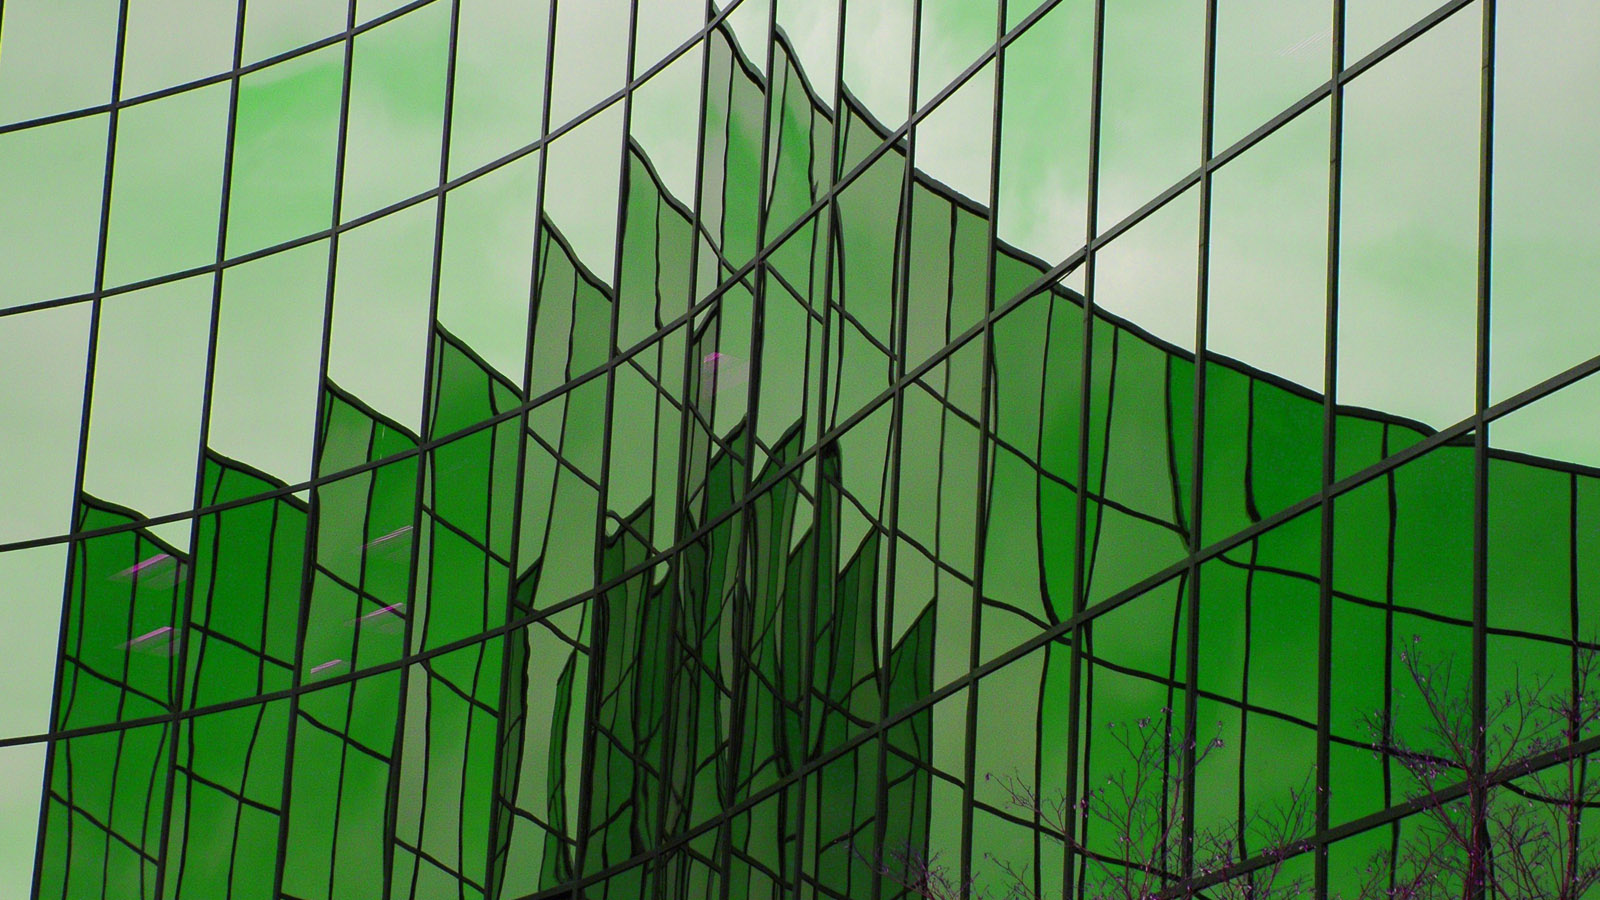 a green-colored building